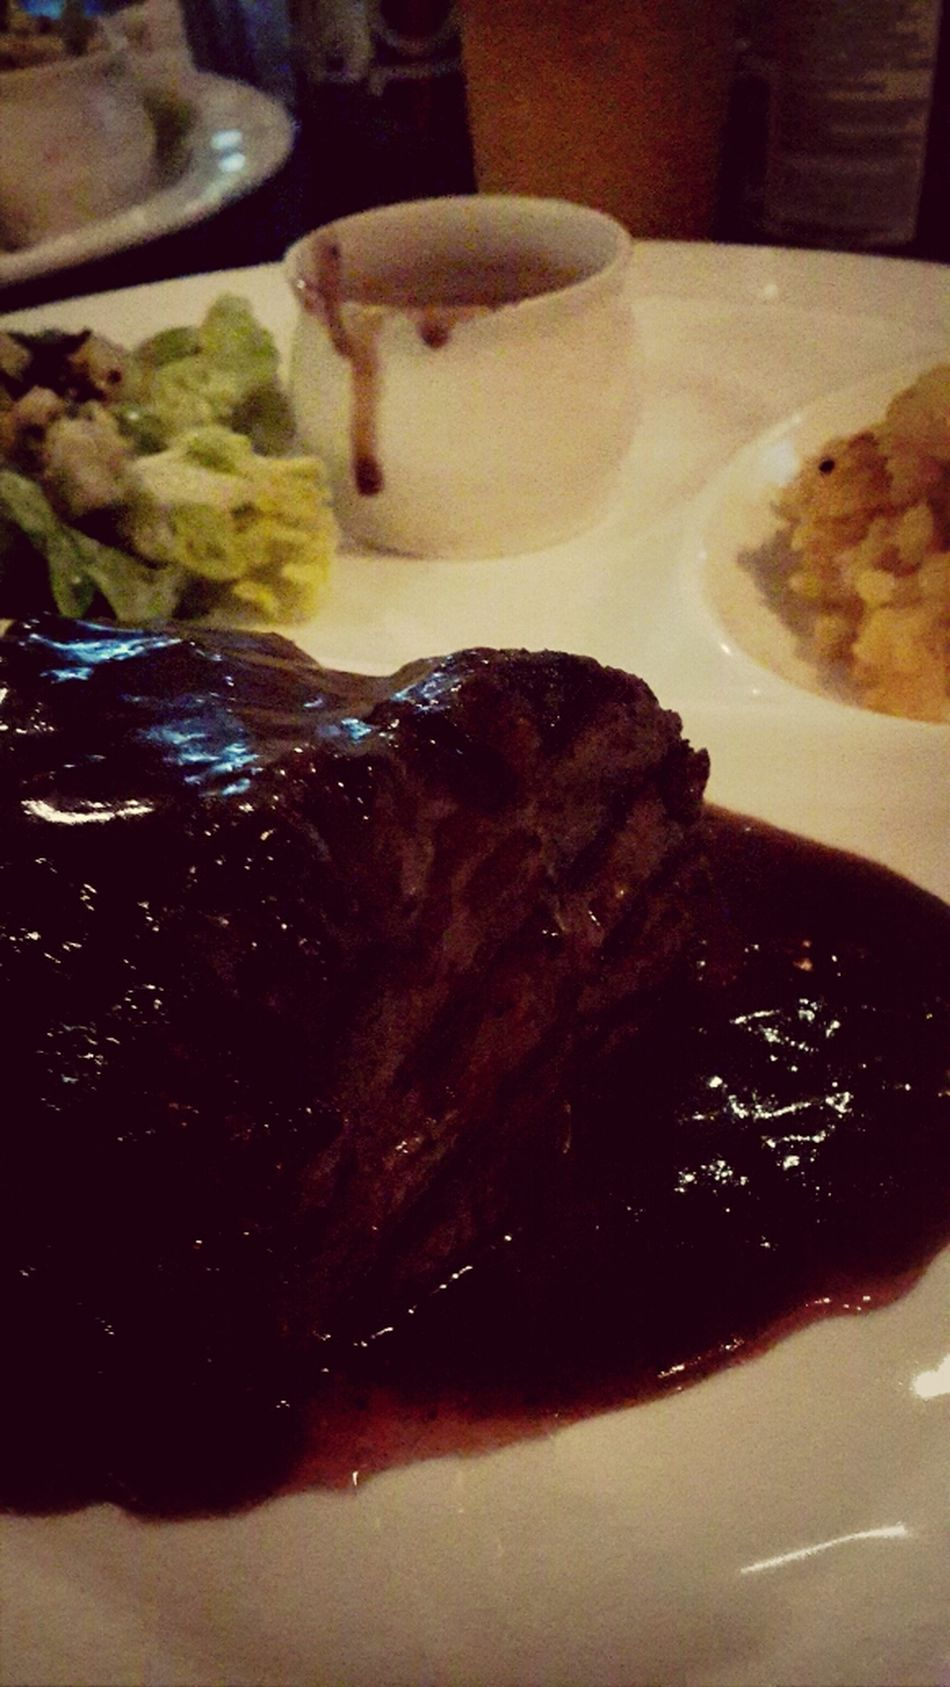 When the world bring u down ... treat yourself with a steak ... what the point of it ... absolutely nothing ? Tenderloin Steak My Dinner